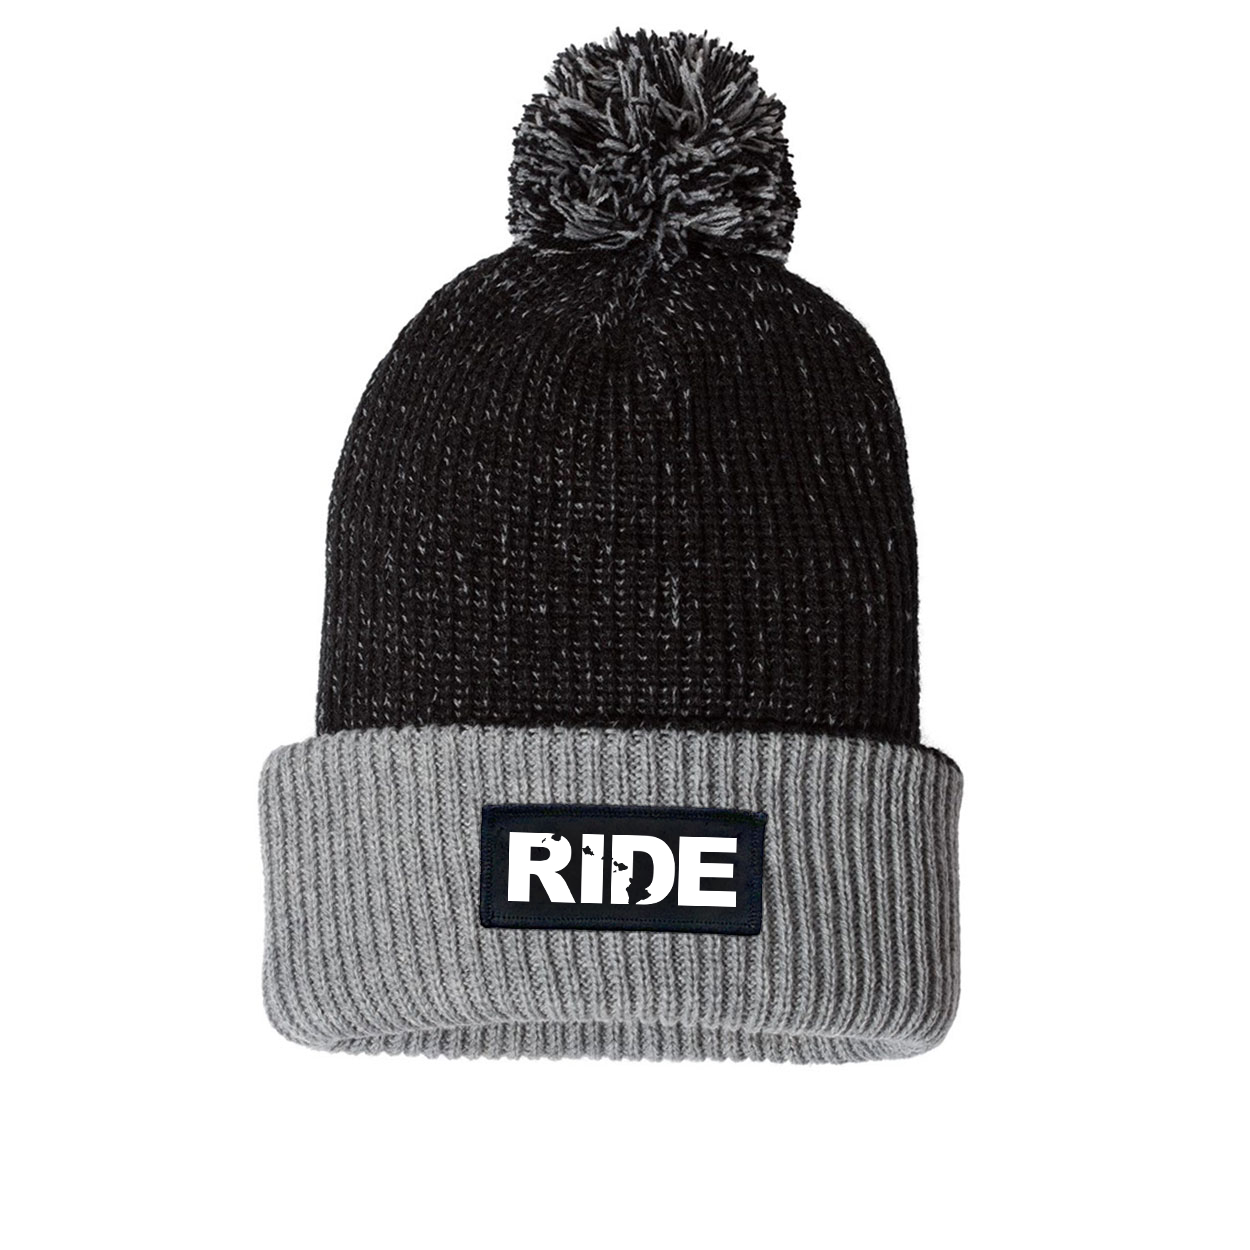 Ride Hawaii Night Out Woven Patch Roll Up Pom Knit Beanie Black/Gray (White Logo)